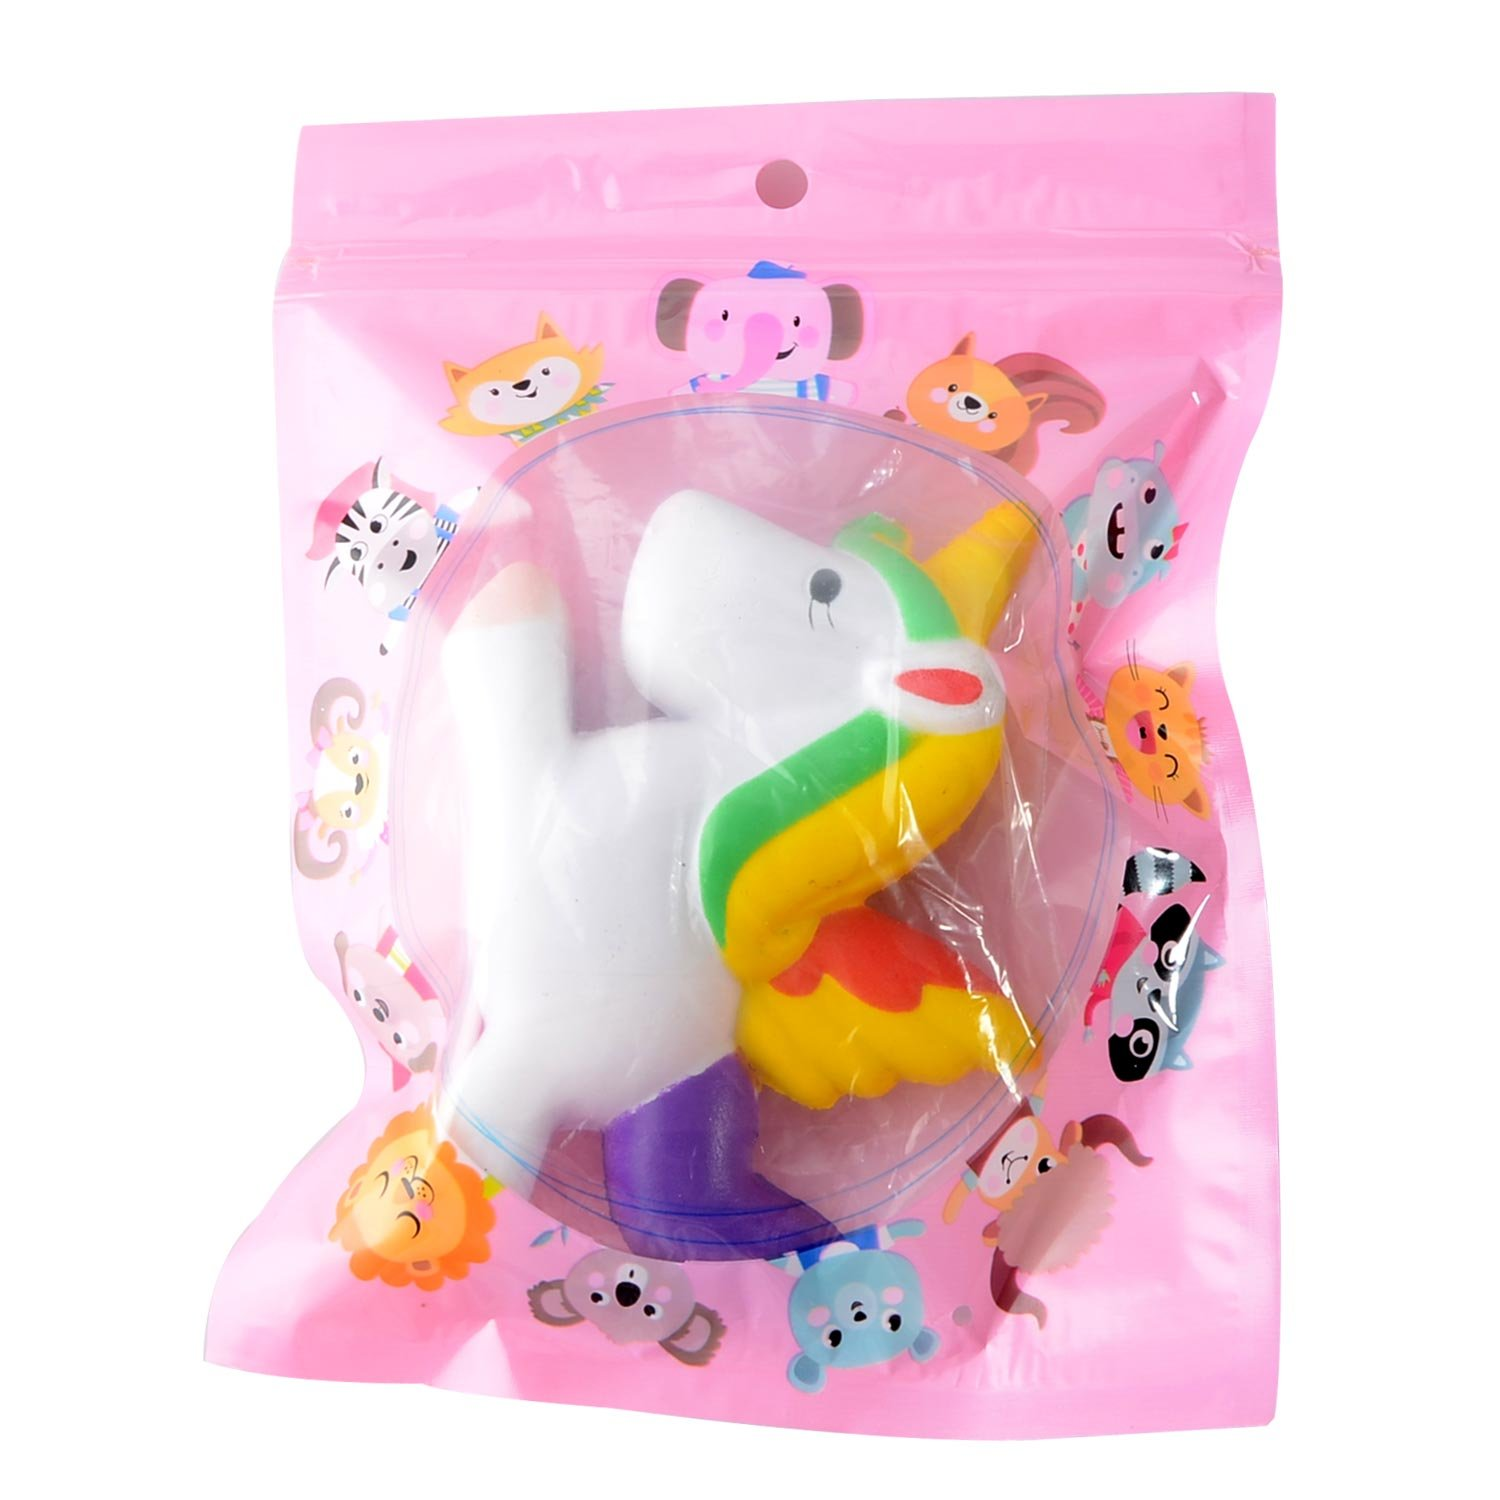 Firlar Unicorn Squishy Animal Slow Rising Stress Relief Toy for Kids Adults (A)